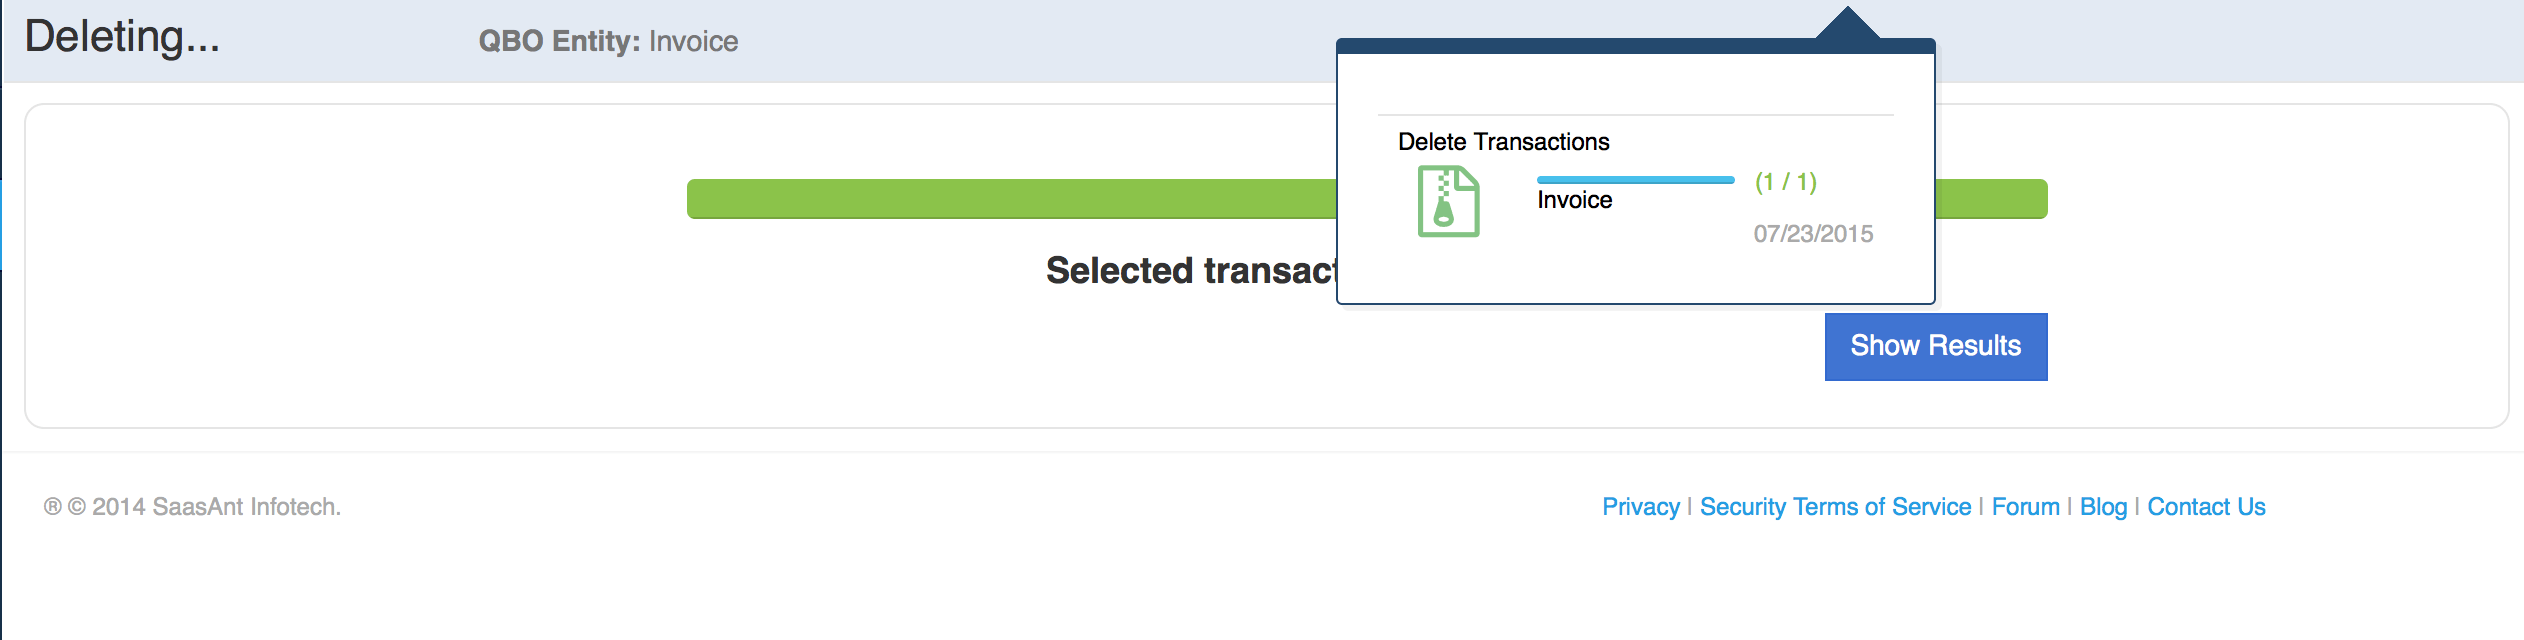 How to Delete Transactions in QuickBooks Online using Excel